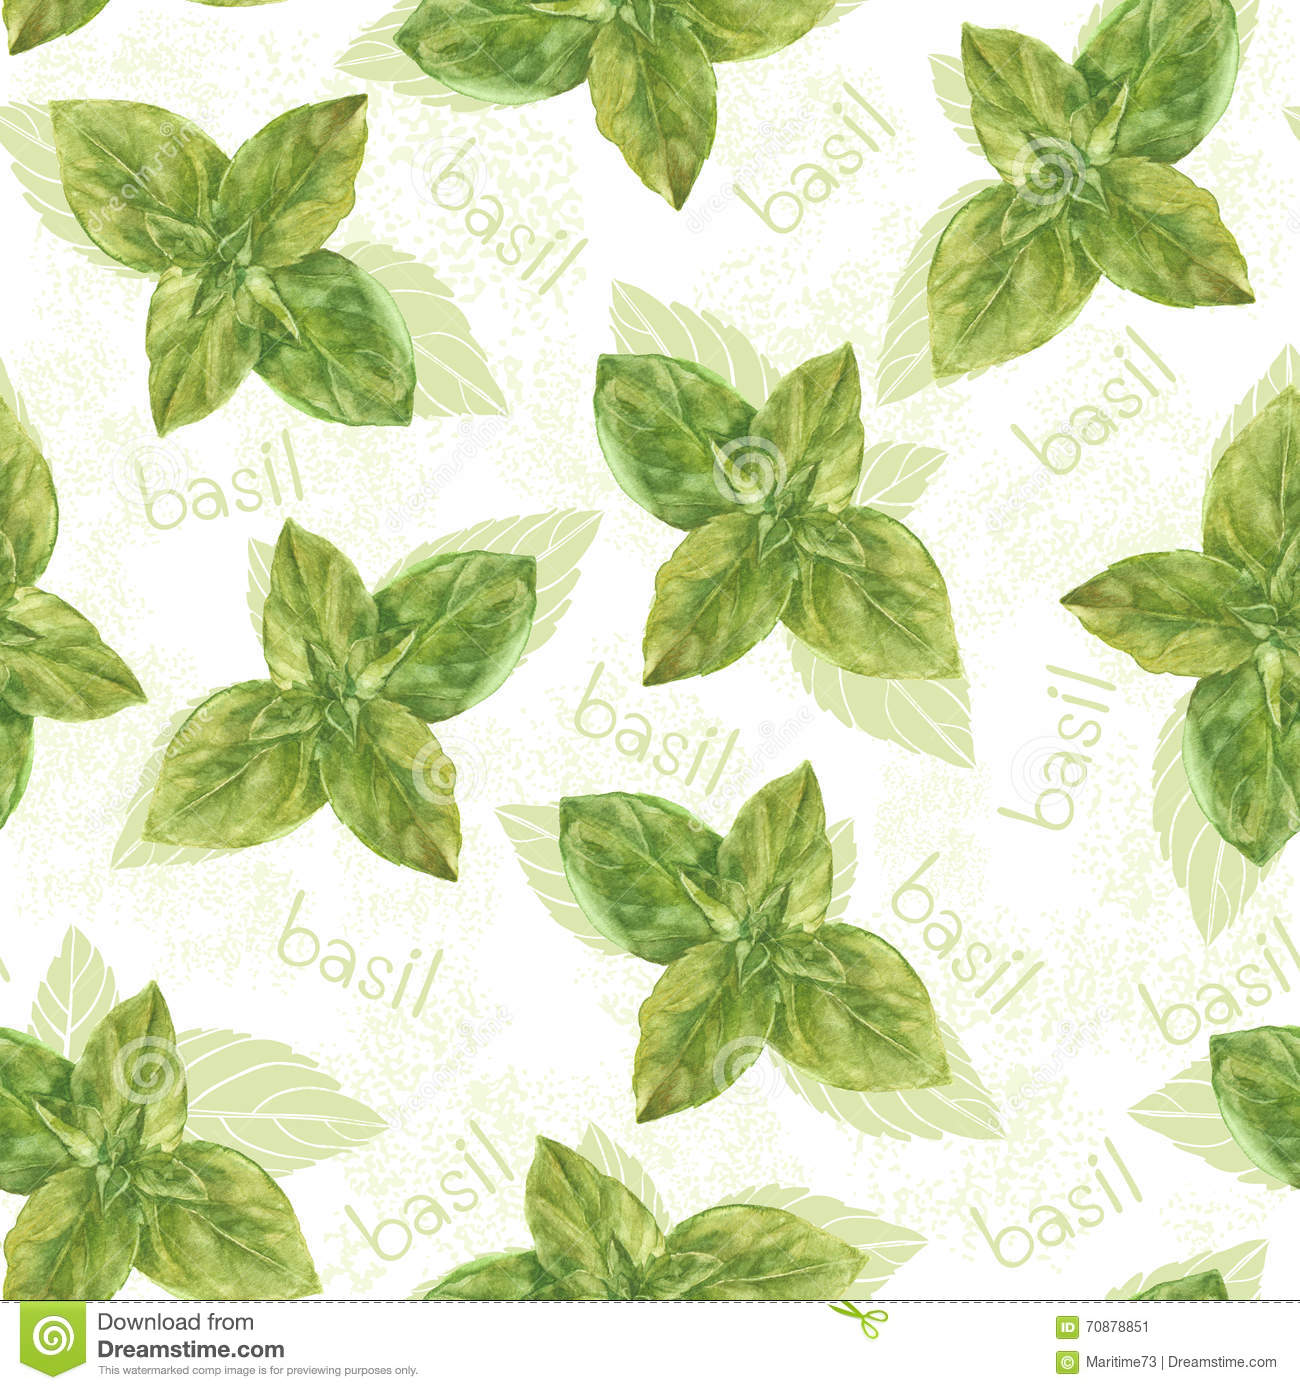 Download seamless pattern with basil hand drawn floral background mono stock illustration